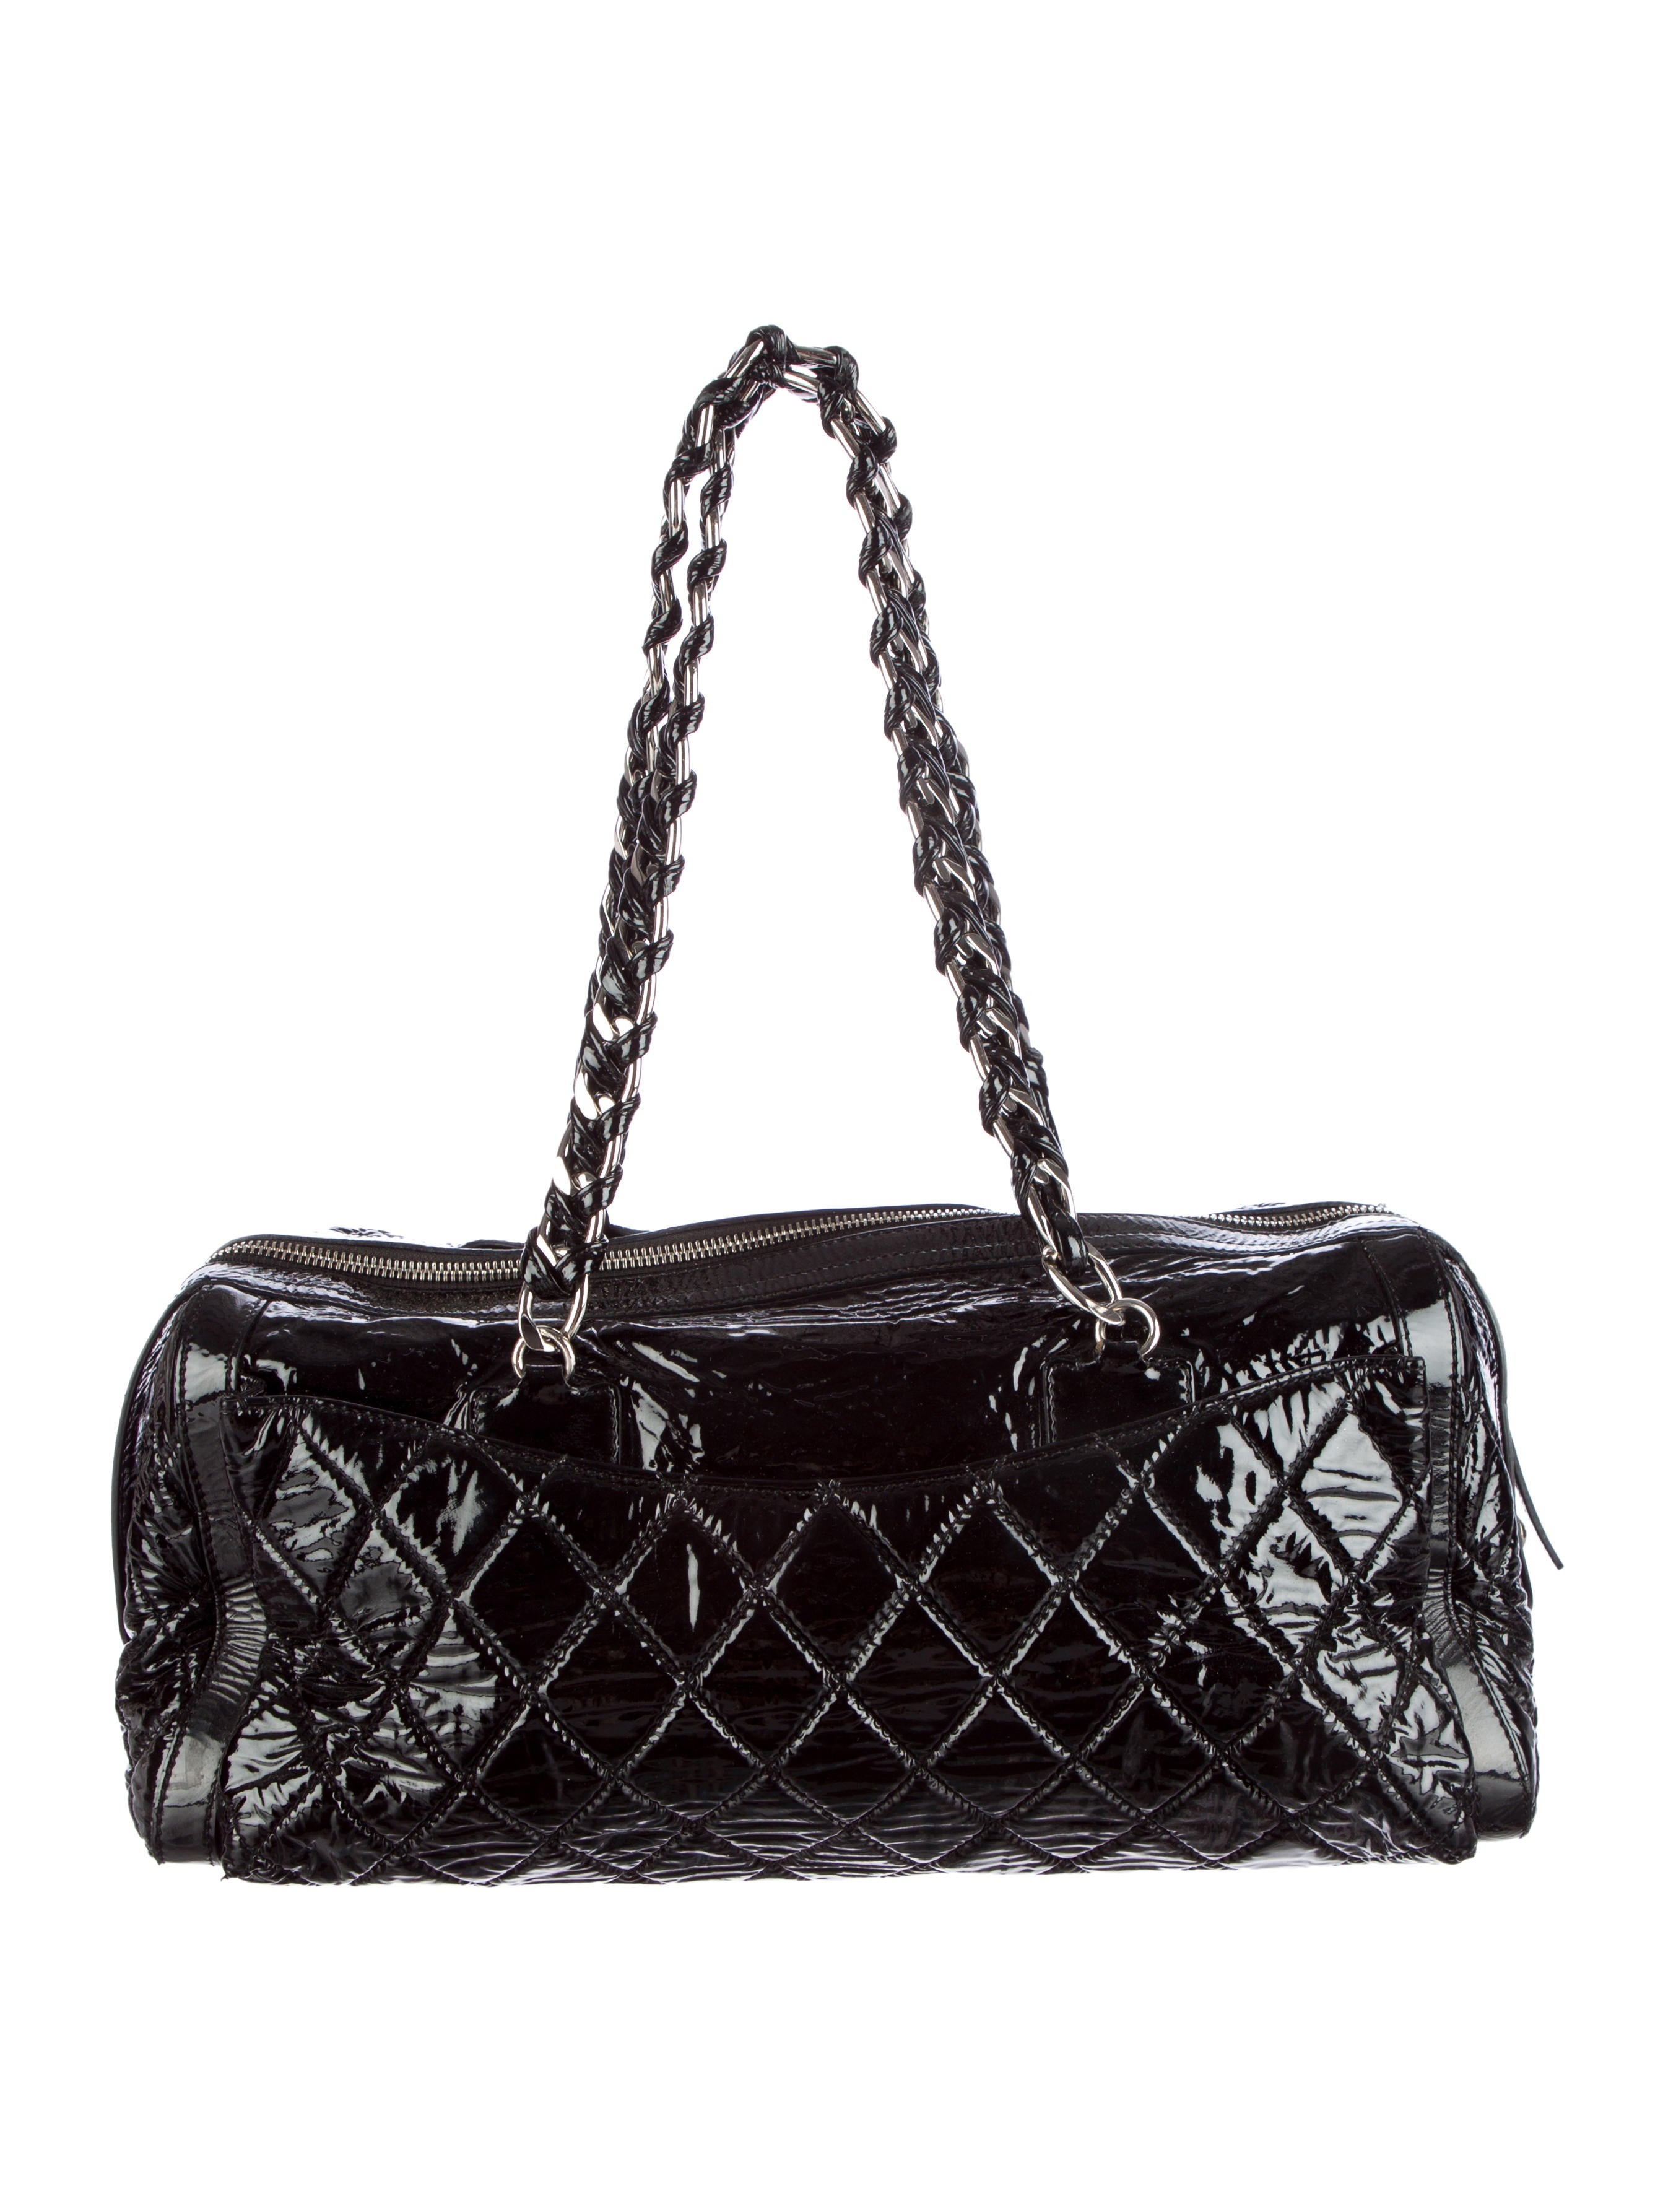 Chanel Quilted Vinyl Flap Bag Handbags Cha95007 The